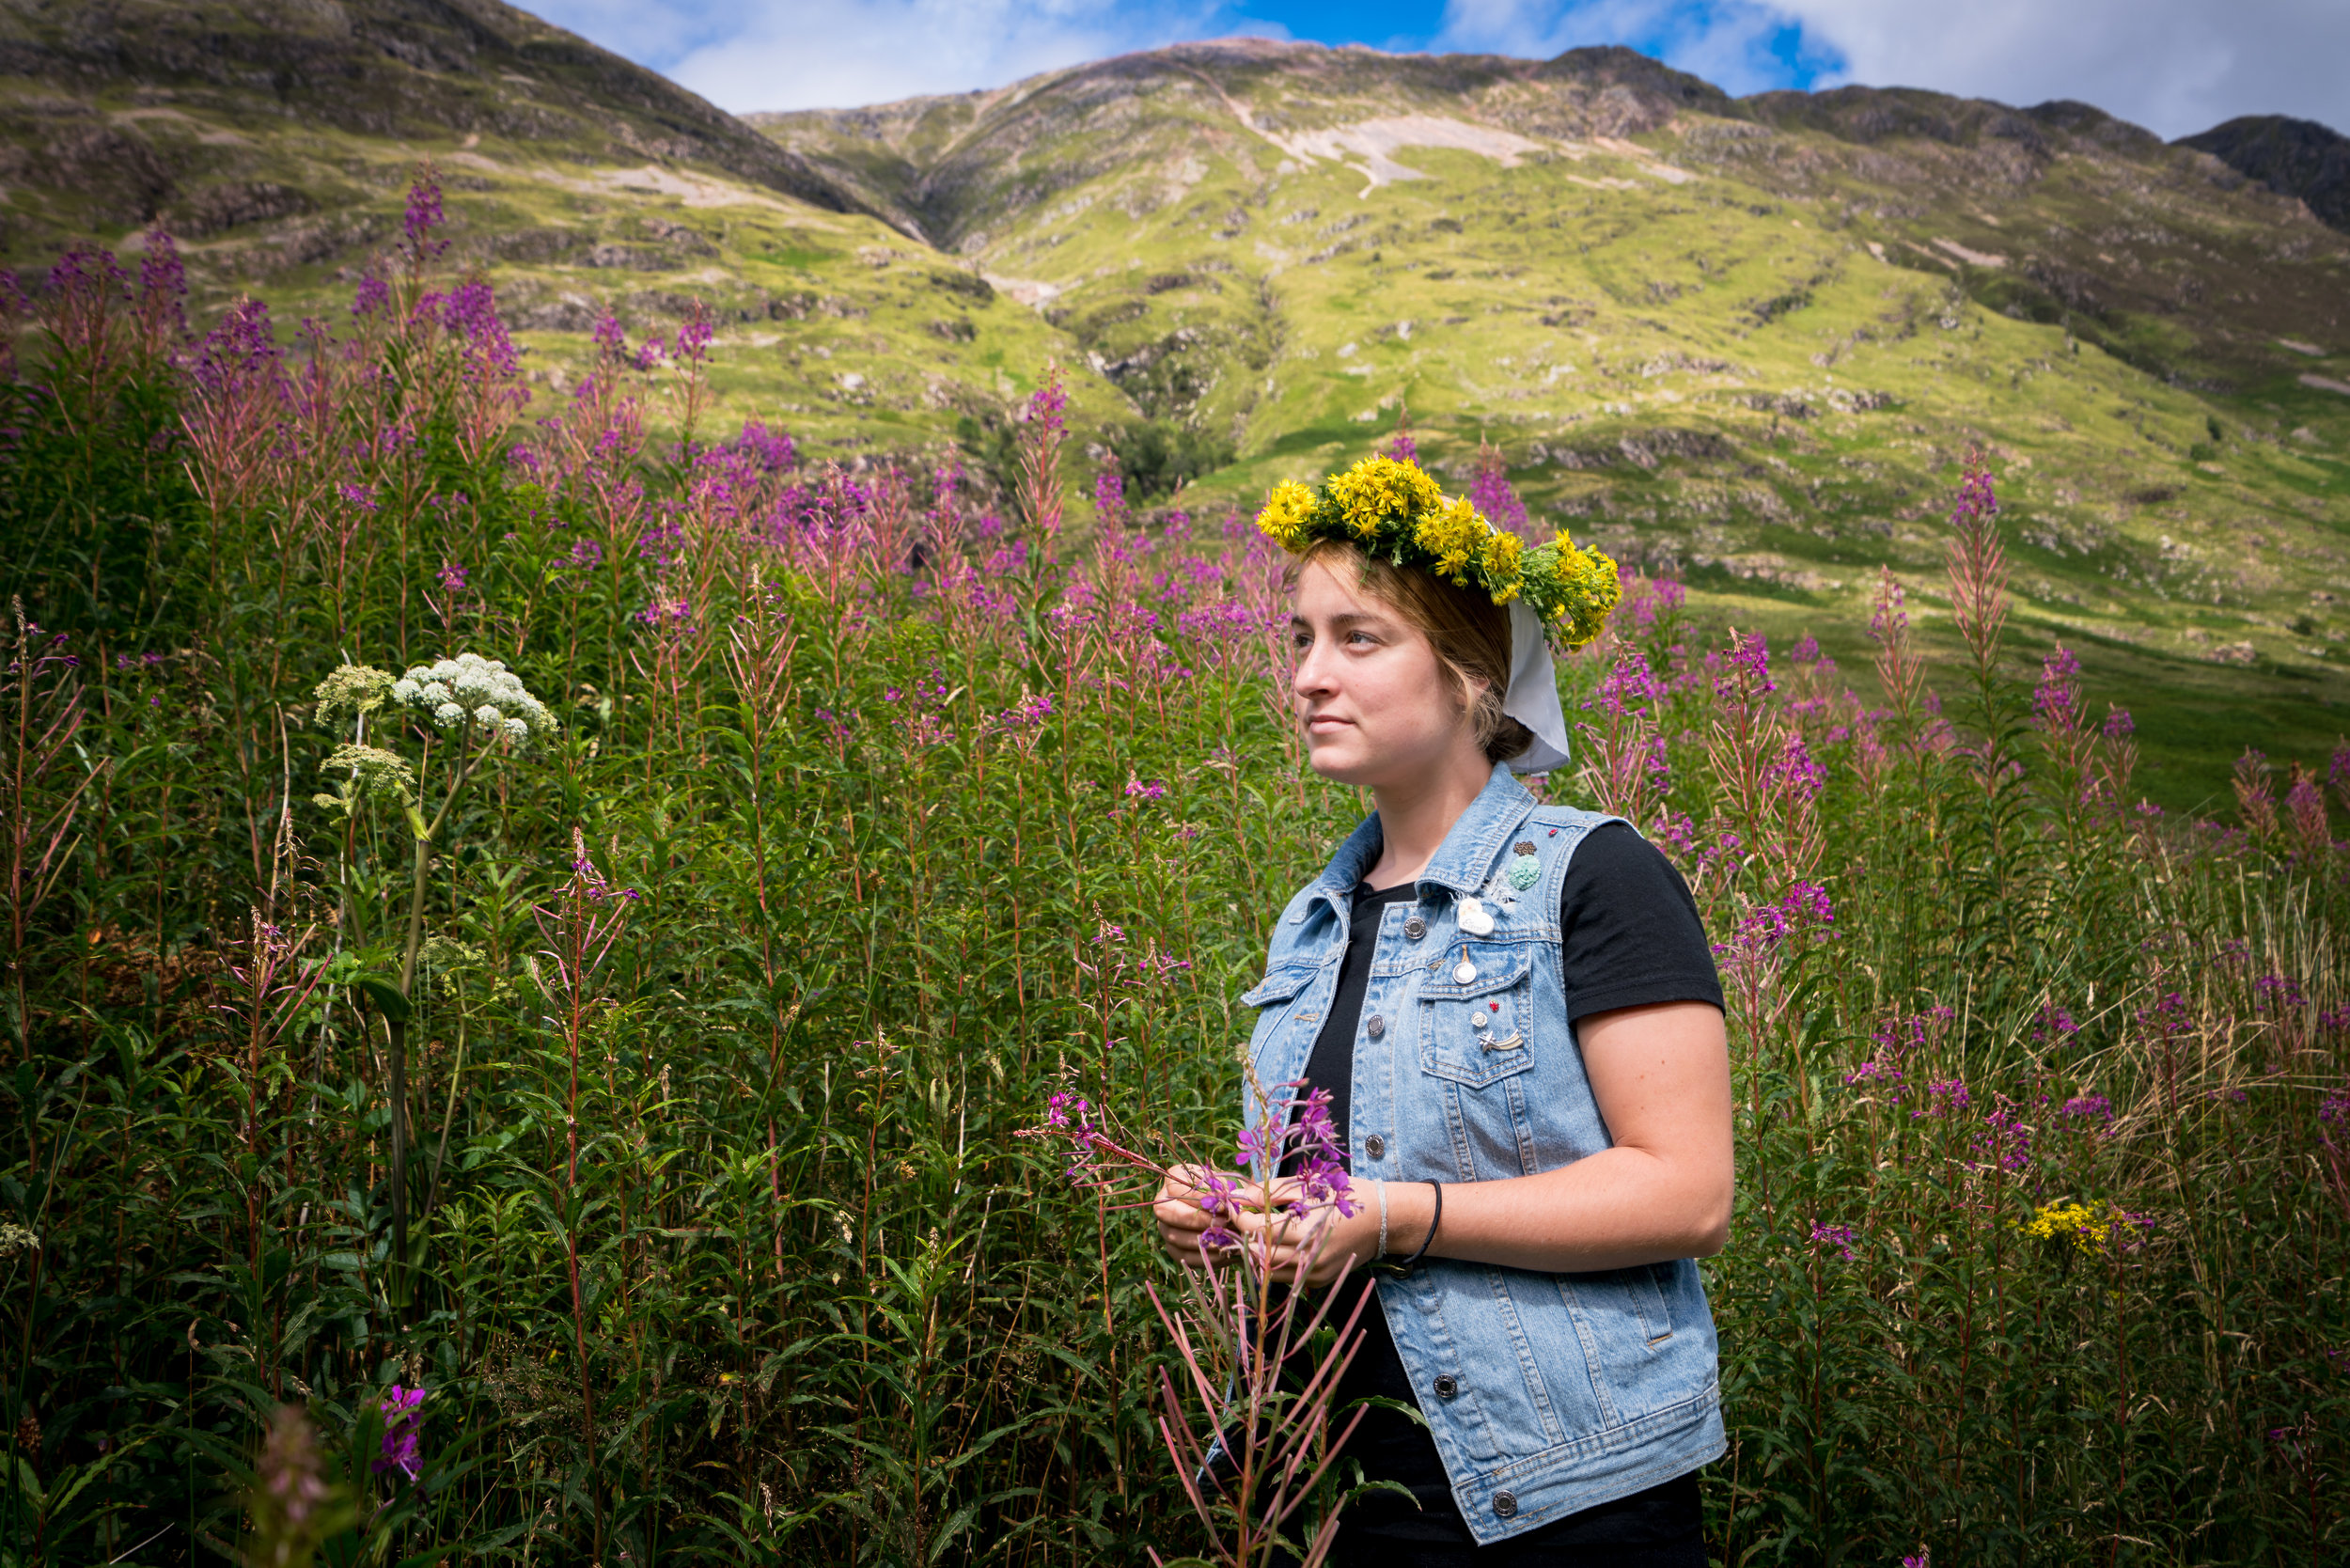 My sister Heidi posing amidst the flowers and Scottish mountains with the flower crown she made